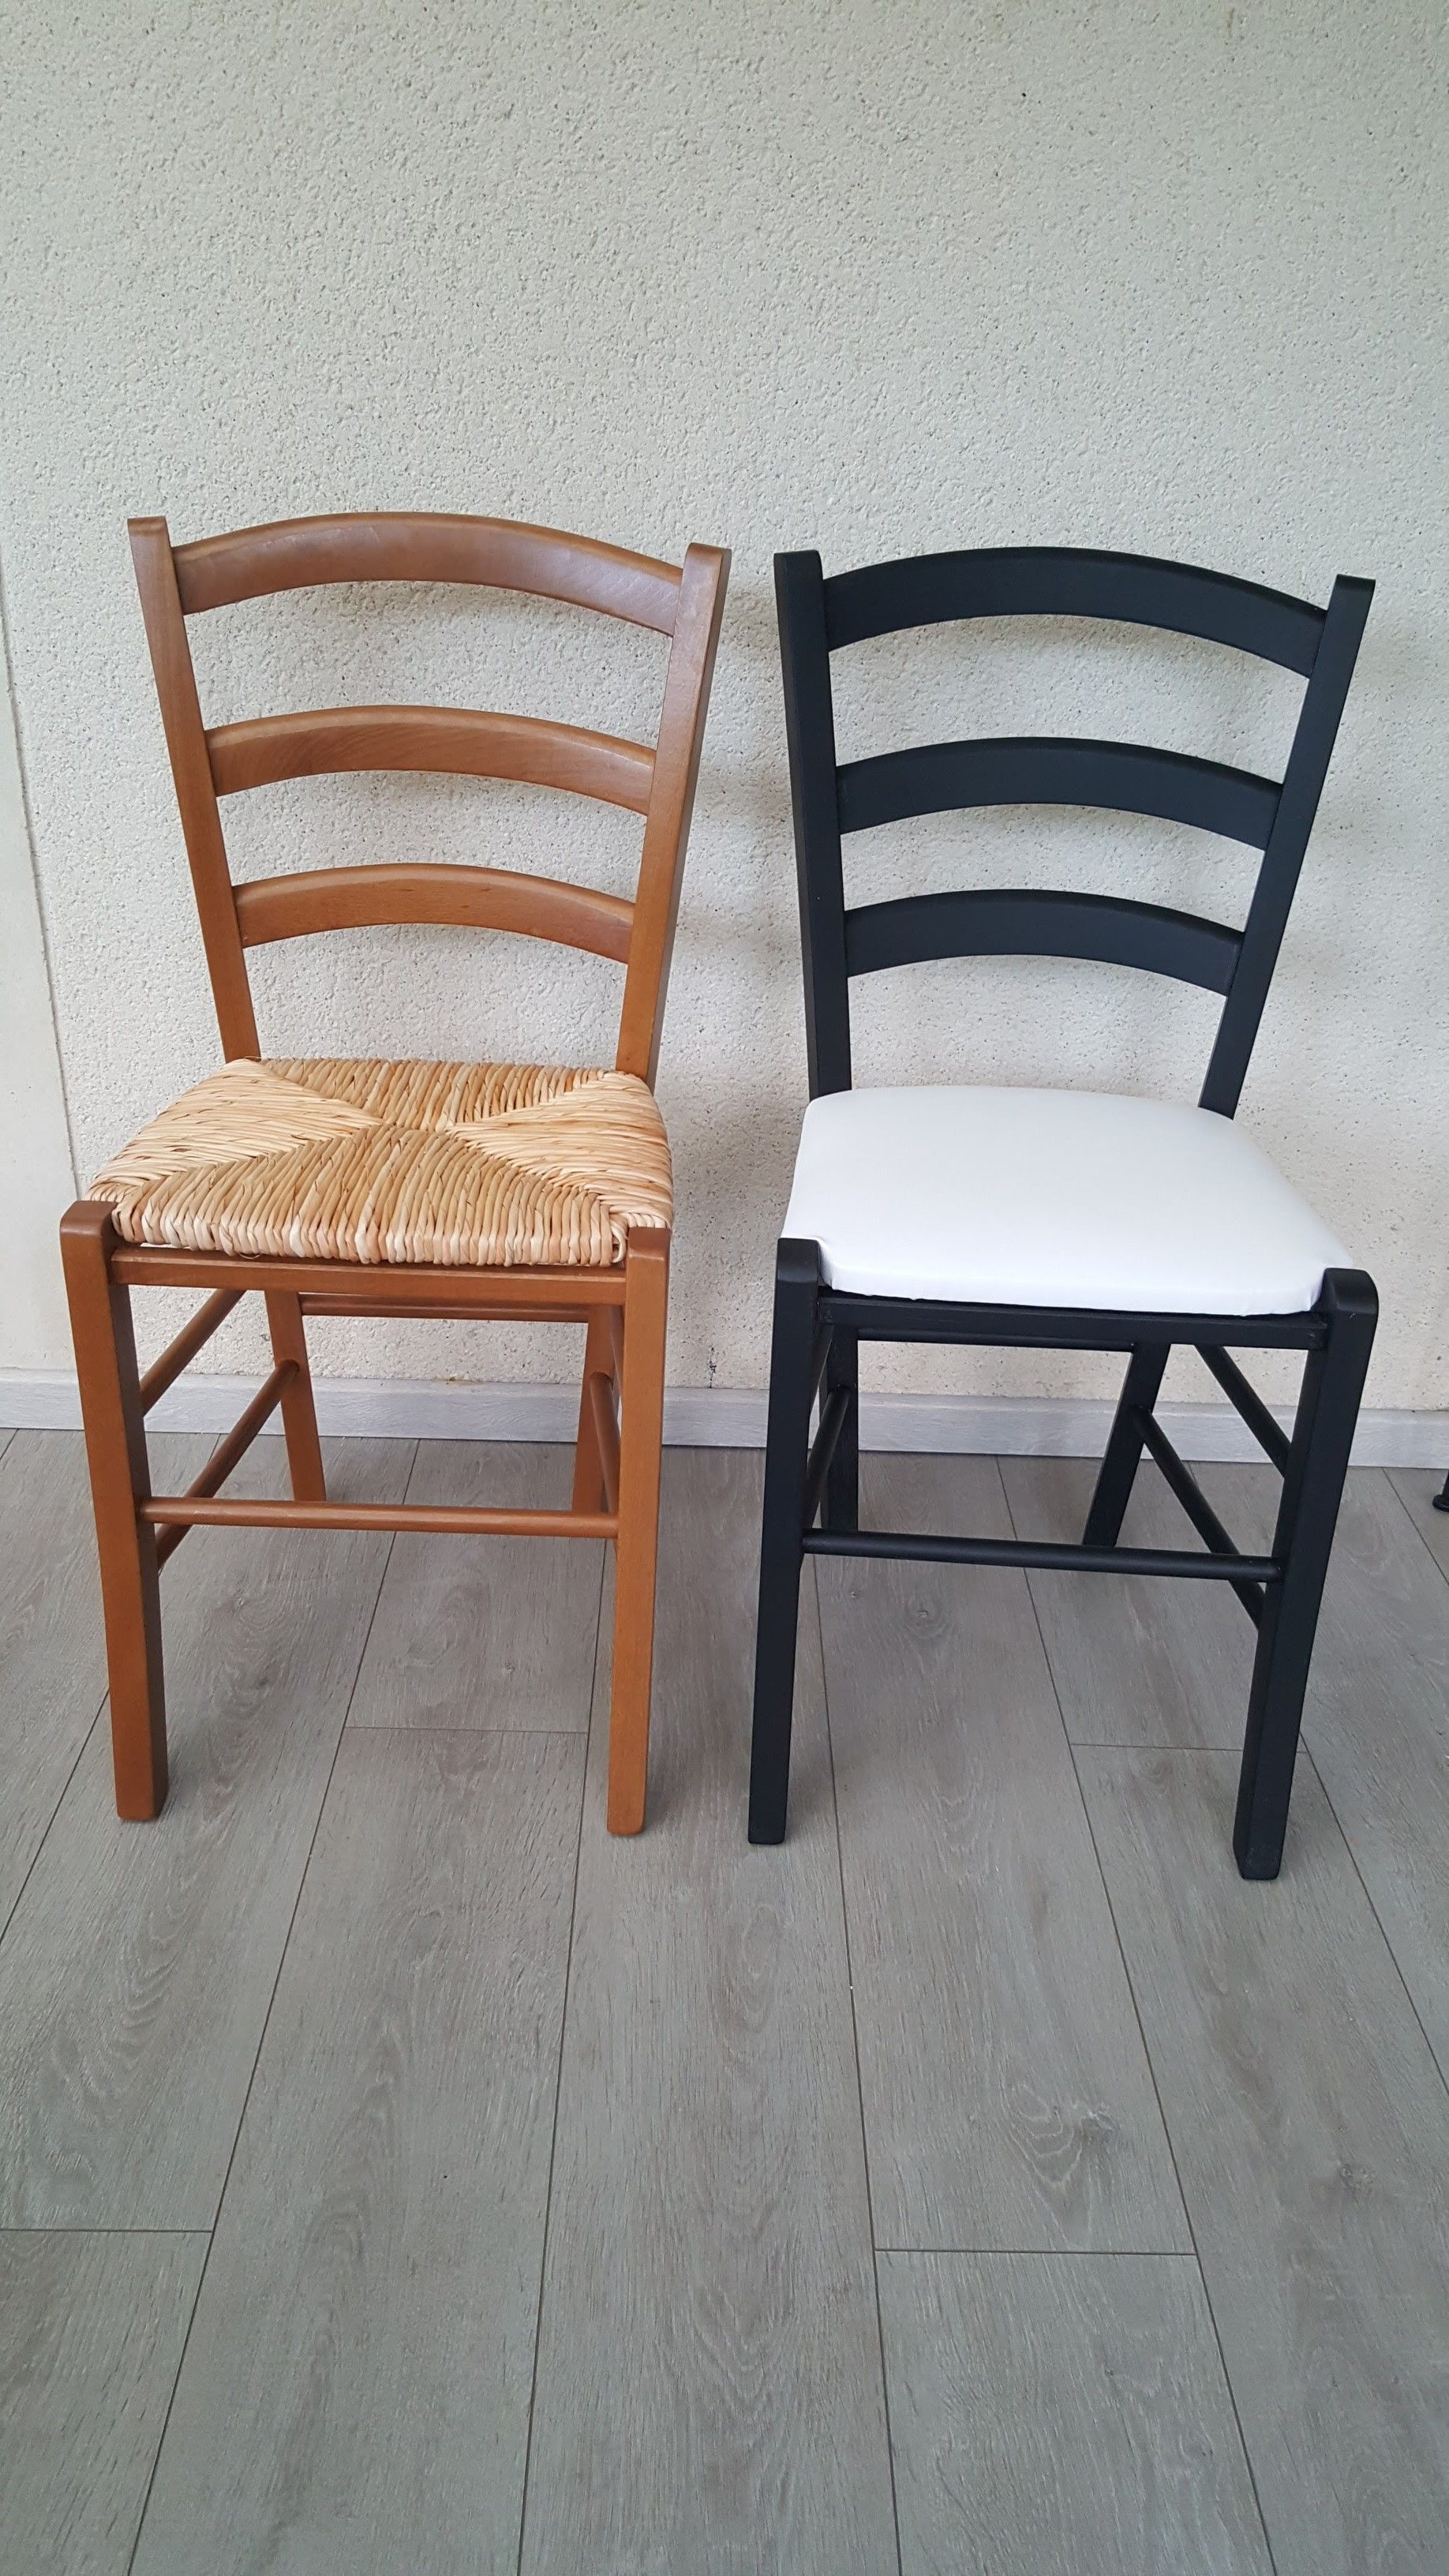 Chaises Paille Peintes Assise En Ska New Furniture Makeover Home Staging Chalets